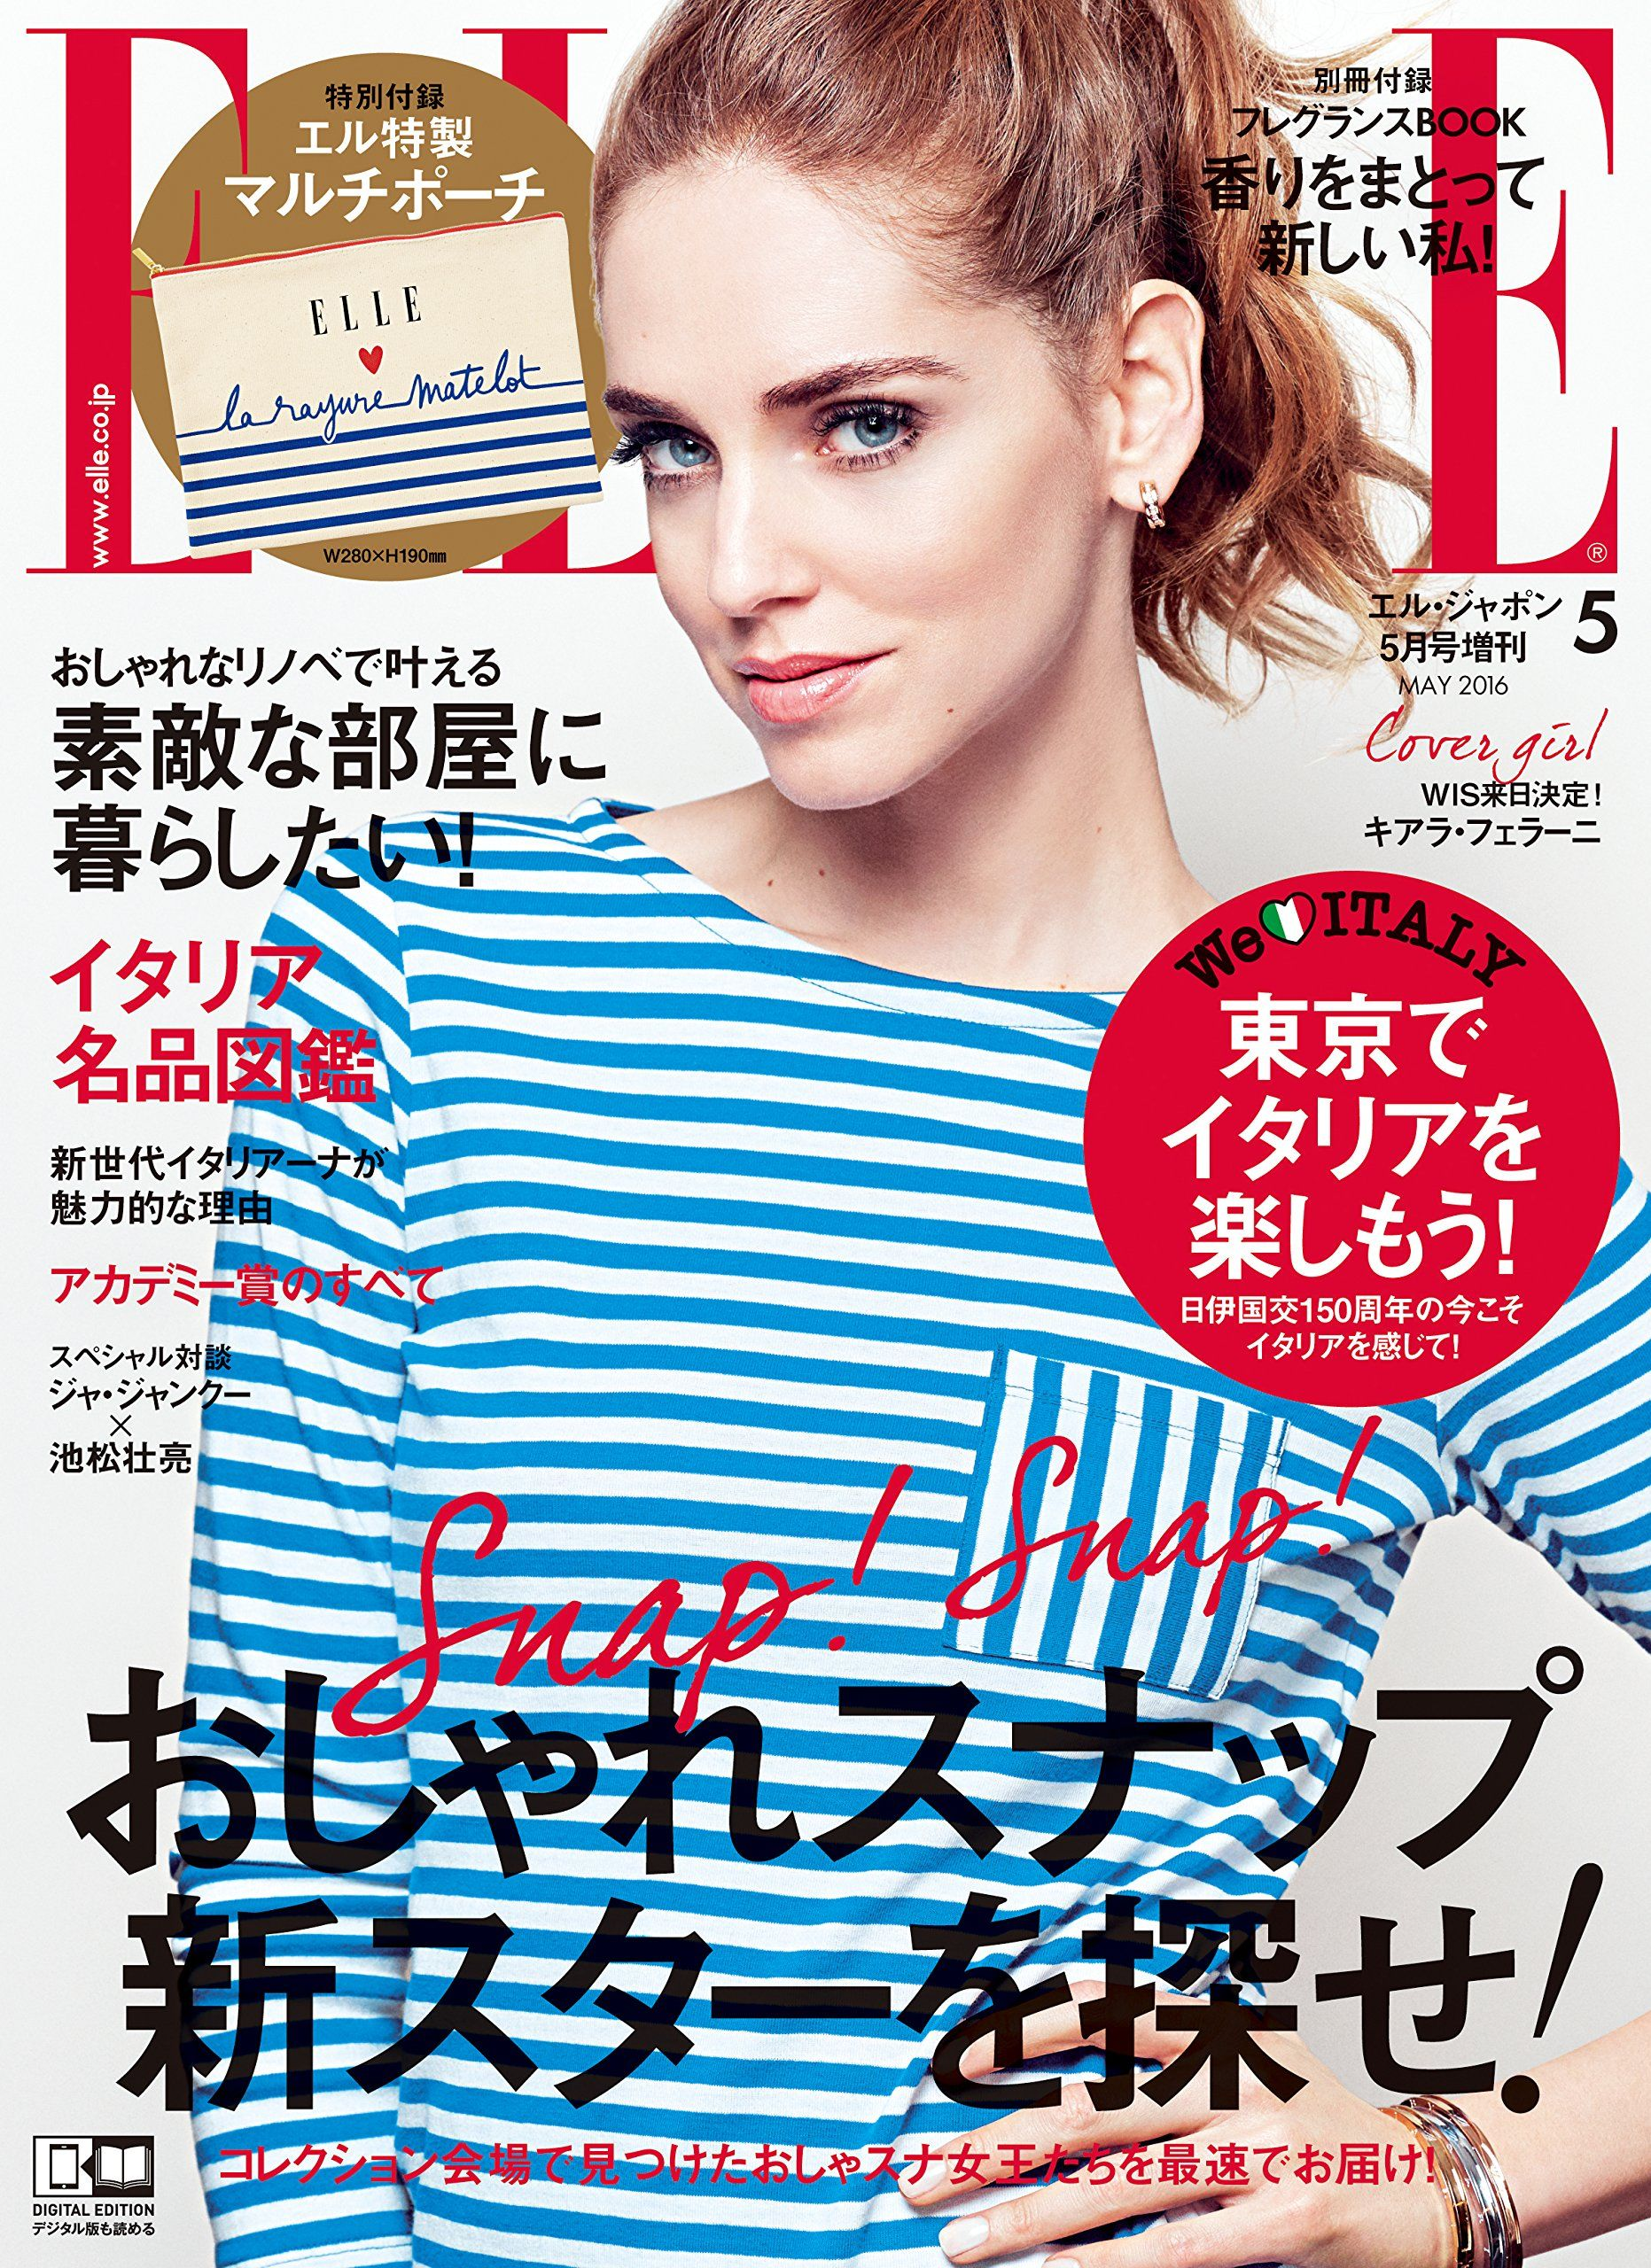 Elle Japan Cover May 2015 | Danilo Scarpati | Il Gufo | Amica | Gabriella Carrubba | Numerique Retouch Photo Retouching Studio